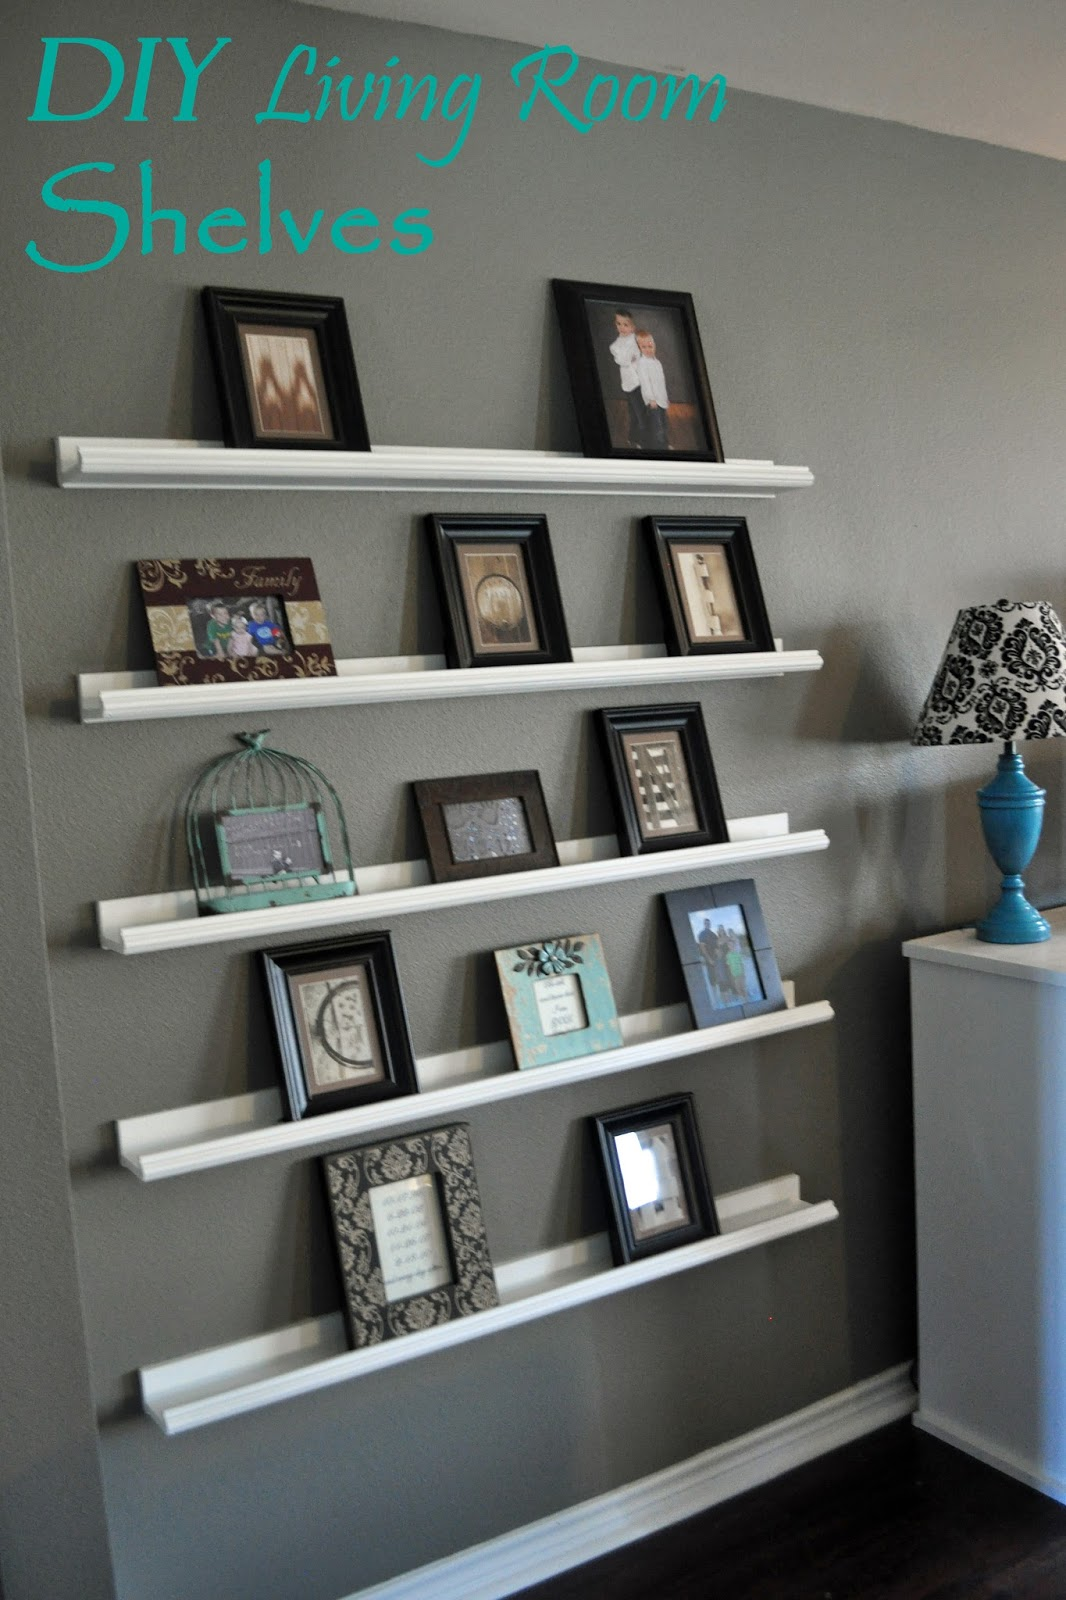 Right Where We Are: DIY Shelving (for Picture Frames)